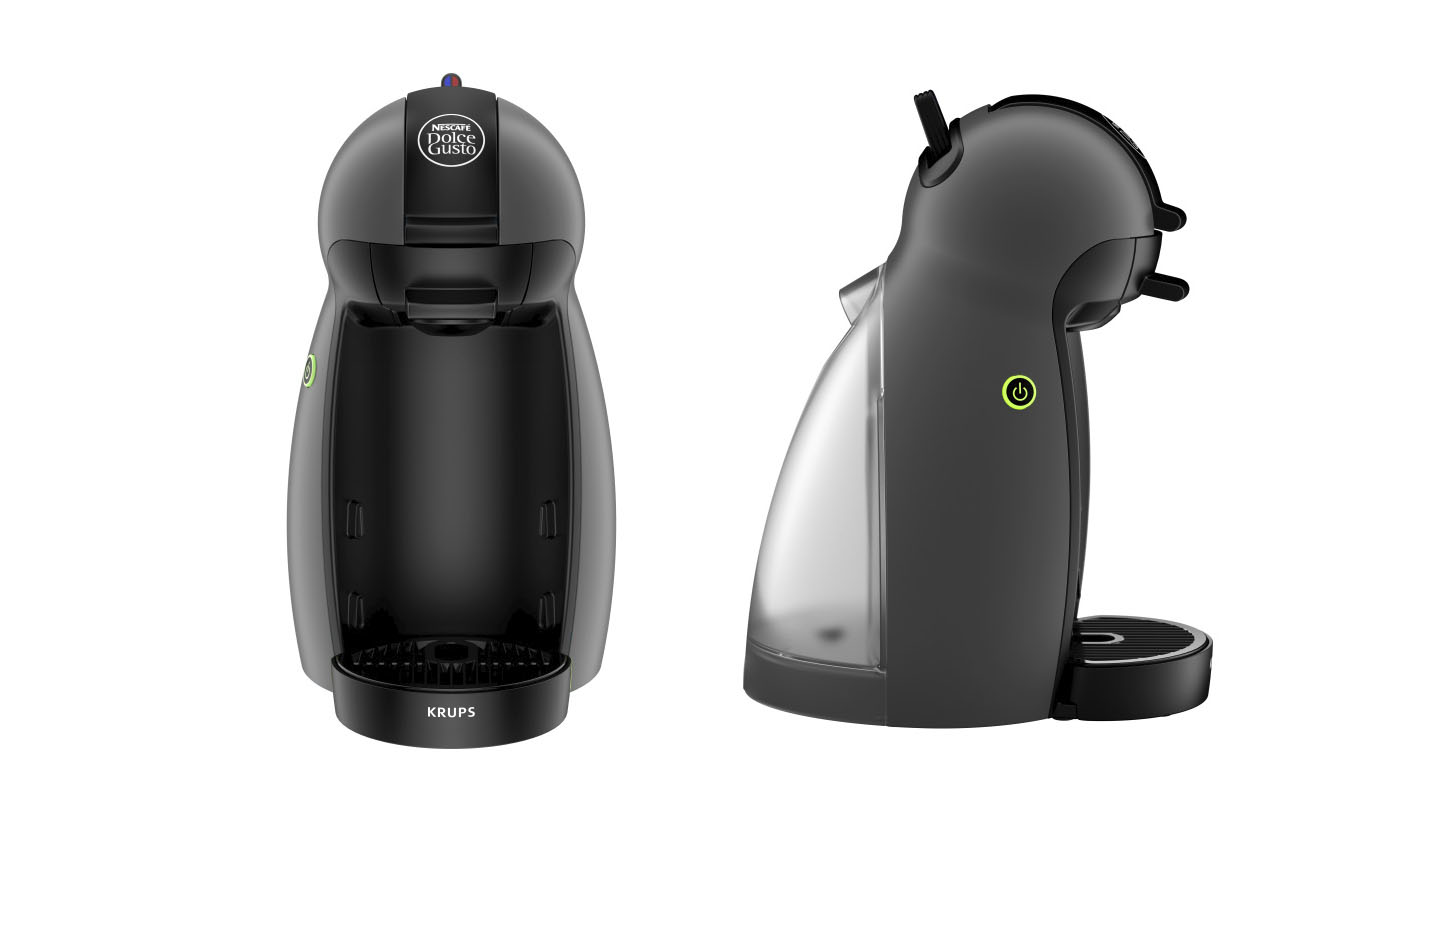 CAFETERA DOLCE GUSTO PICCOLO KP100B (KRUPS)